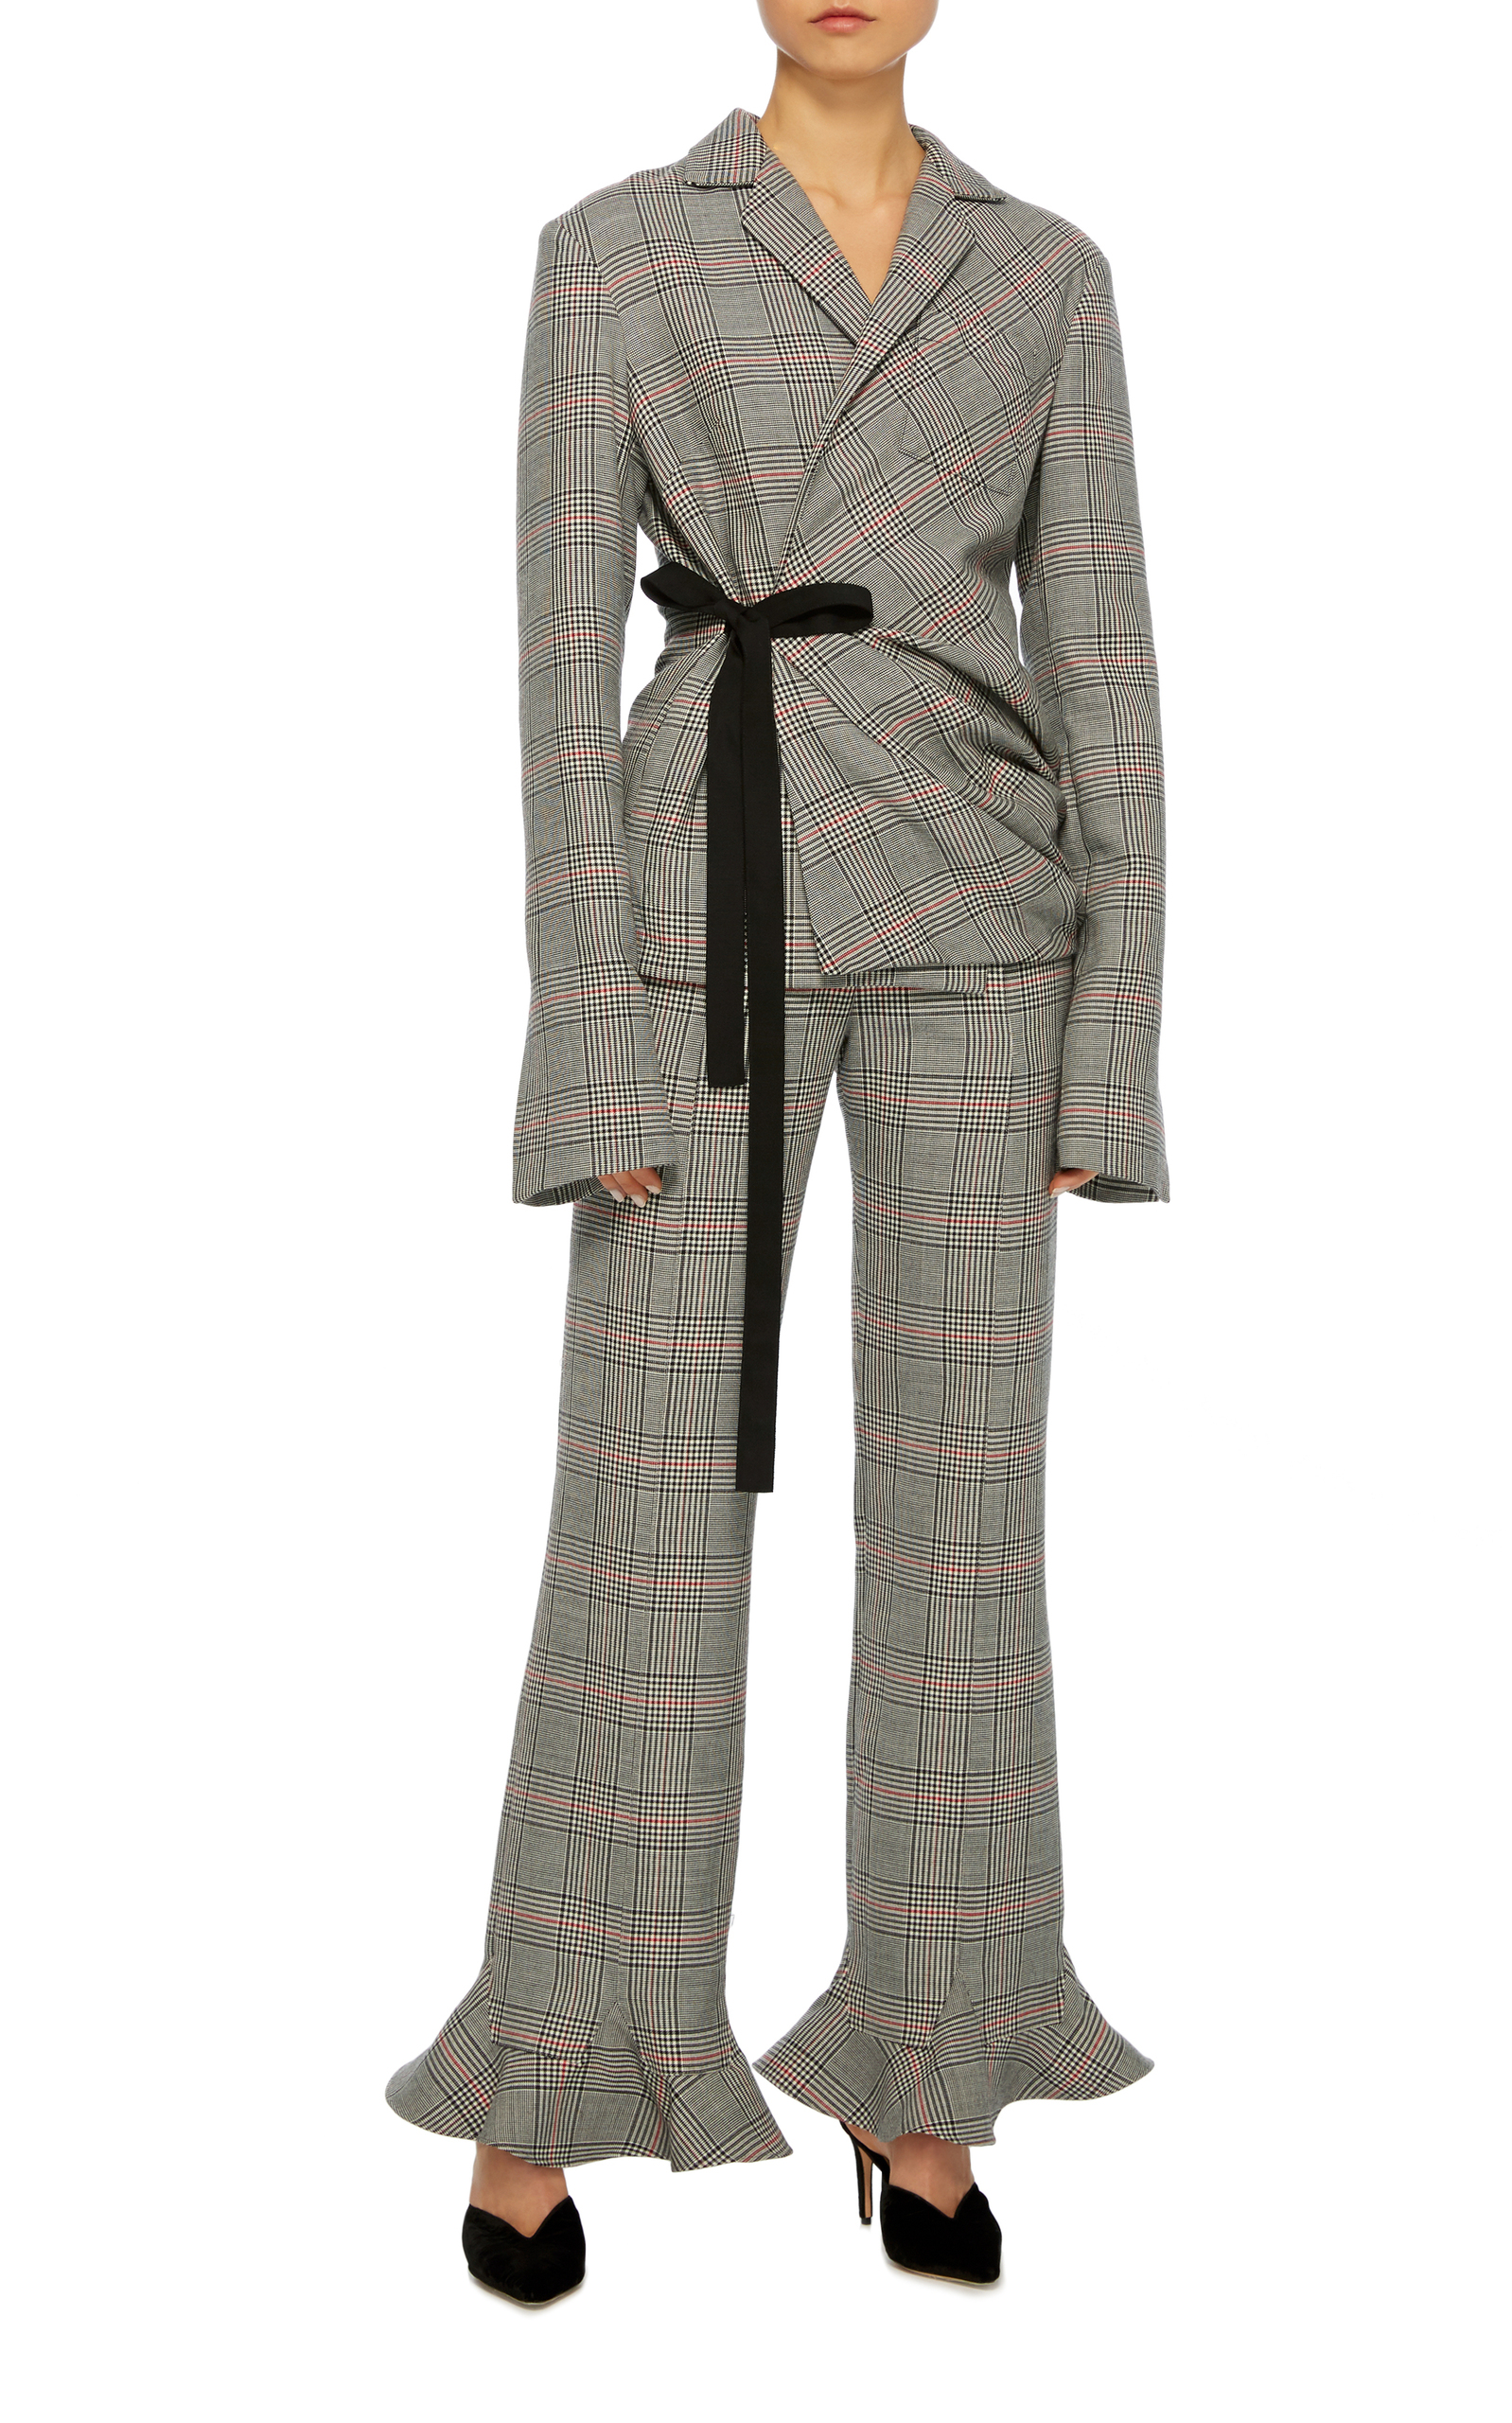 This Rosie Assoulin suit for me is the perfect balance of masculine and feminine. A masculine concept and print but with soft shoulders, exaggerated sleeve lengths and frill trouser cuffs a girl can wear these pieces a million ways and always look amazing.